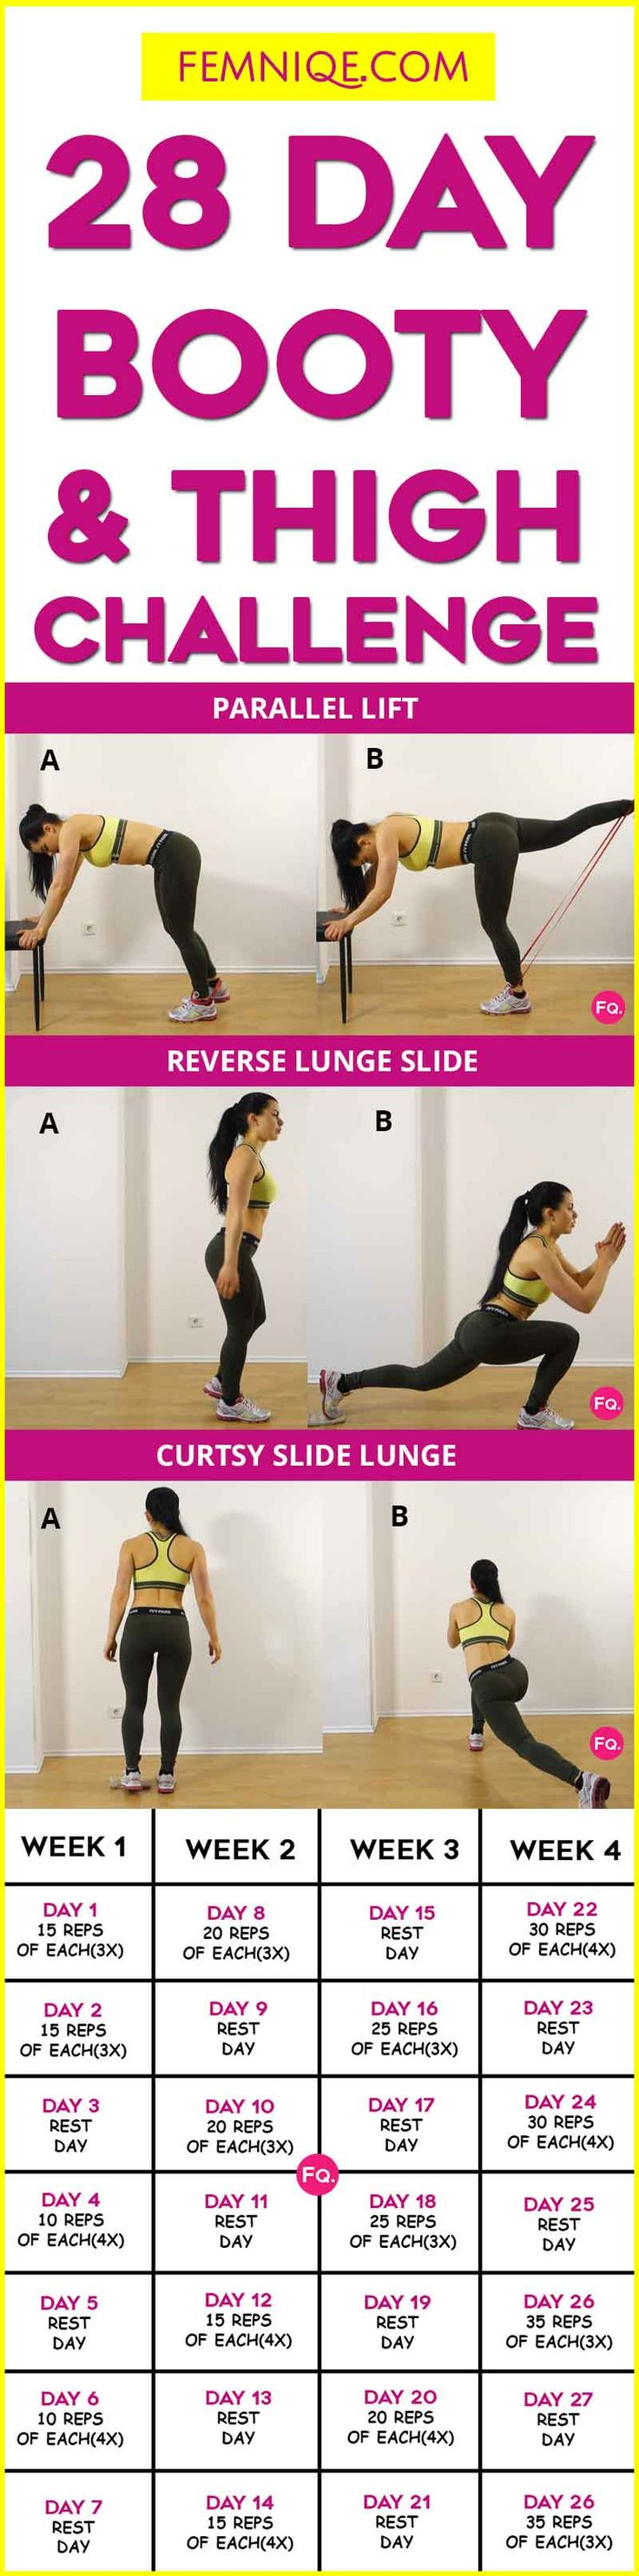 Have that special beach party or vacation coming up and want to sexify your booty and thighs? Then we have the right challenge for you. This 28 day butt and thigh workout challenge will sculpt your thighs, and lift and firm up those glutes. Now this challenge is moderately challenging in a way that will … Read More →